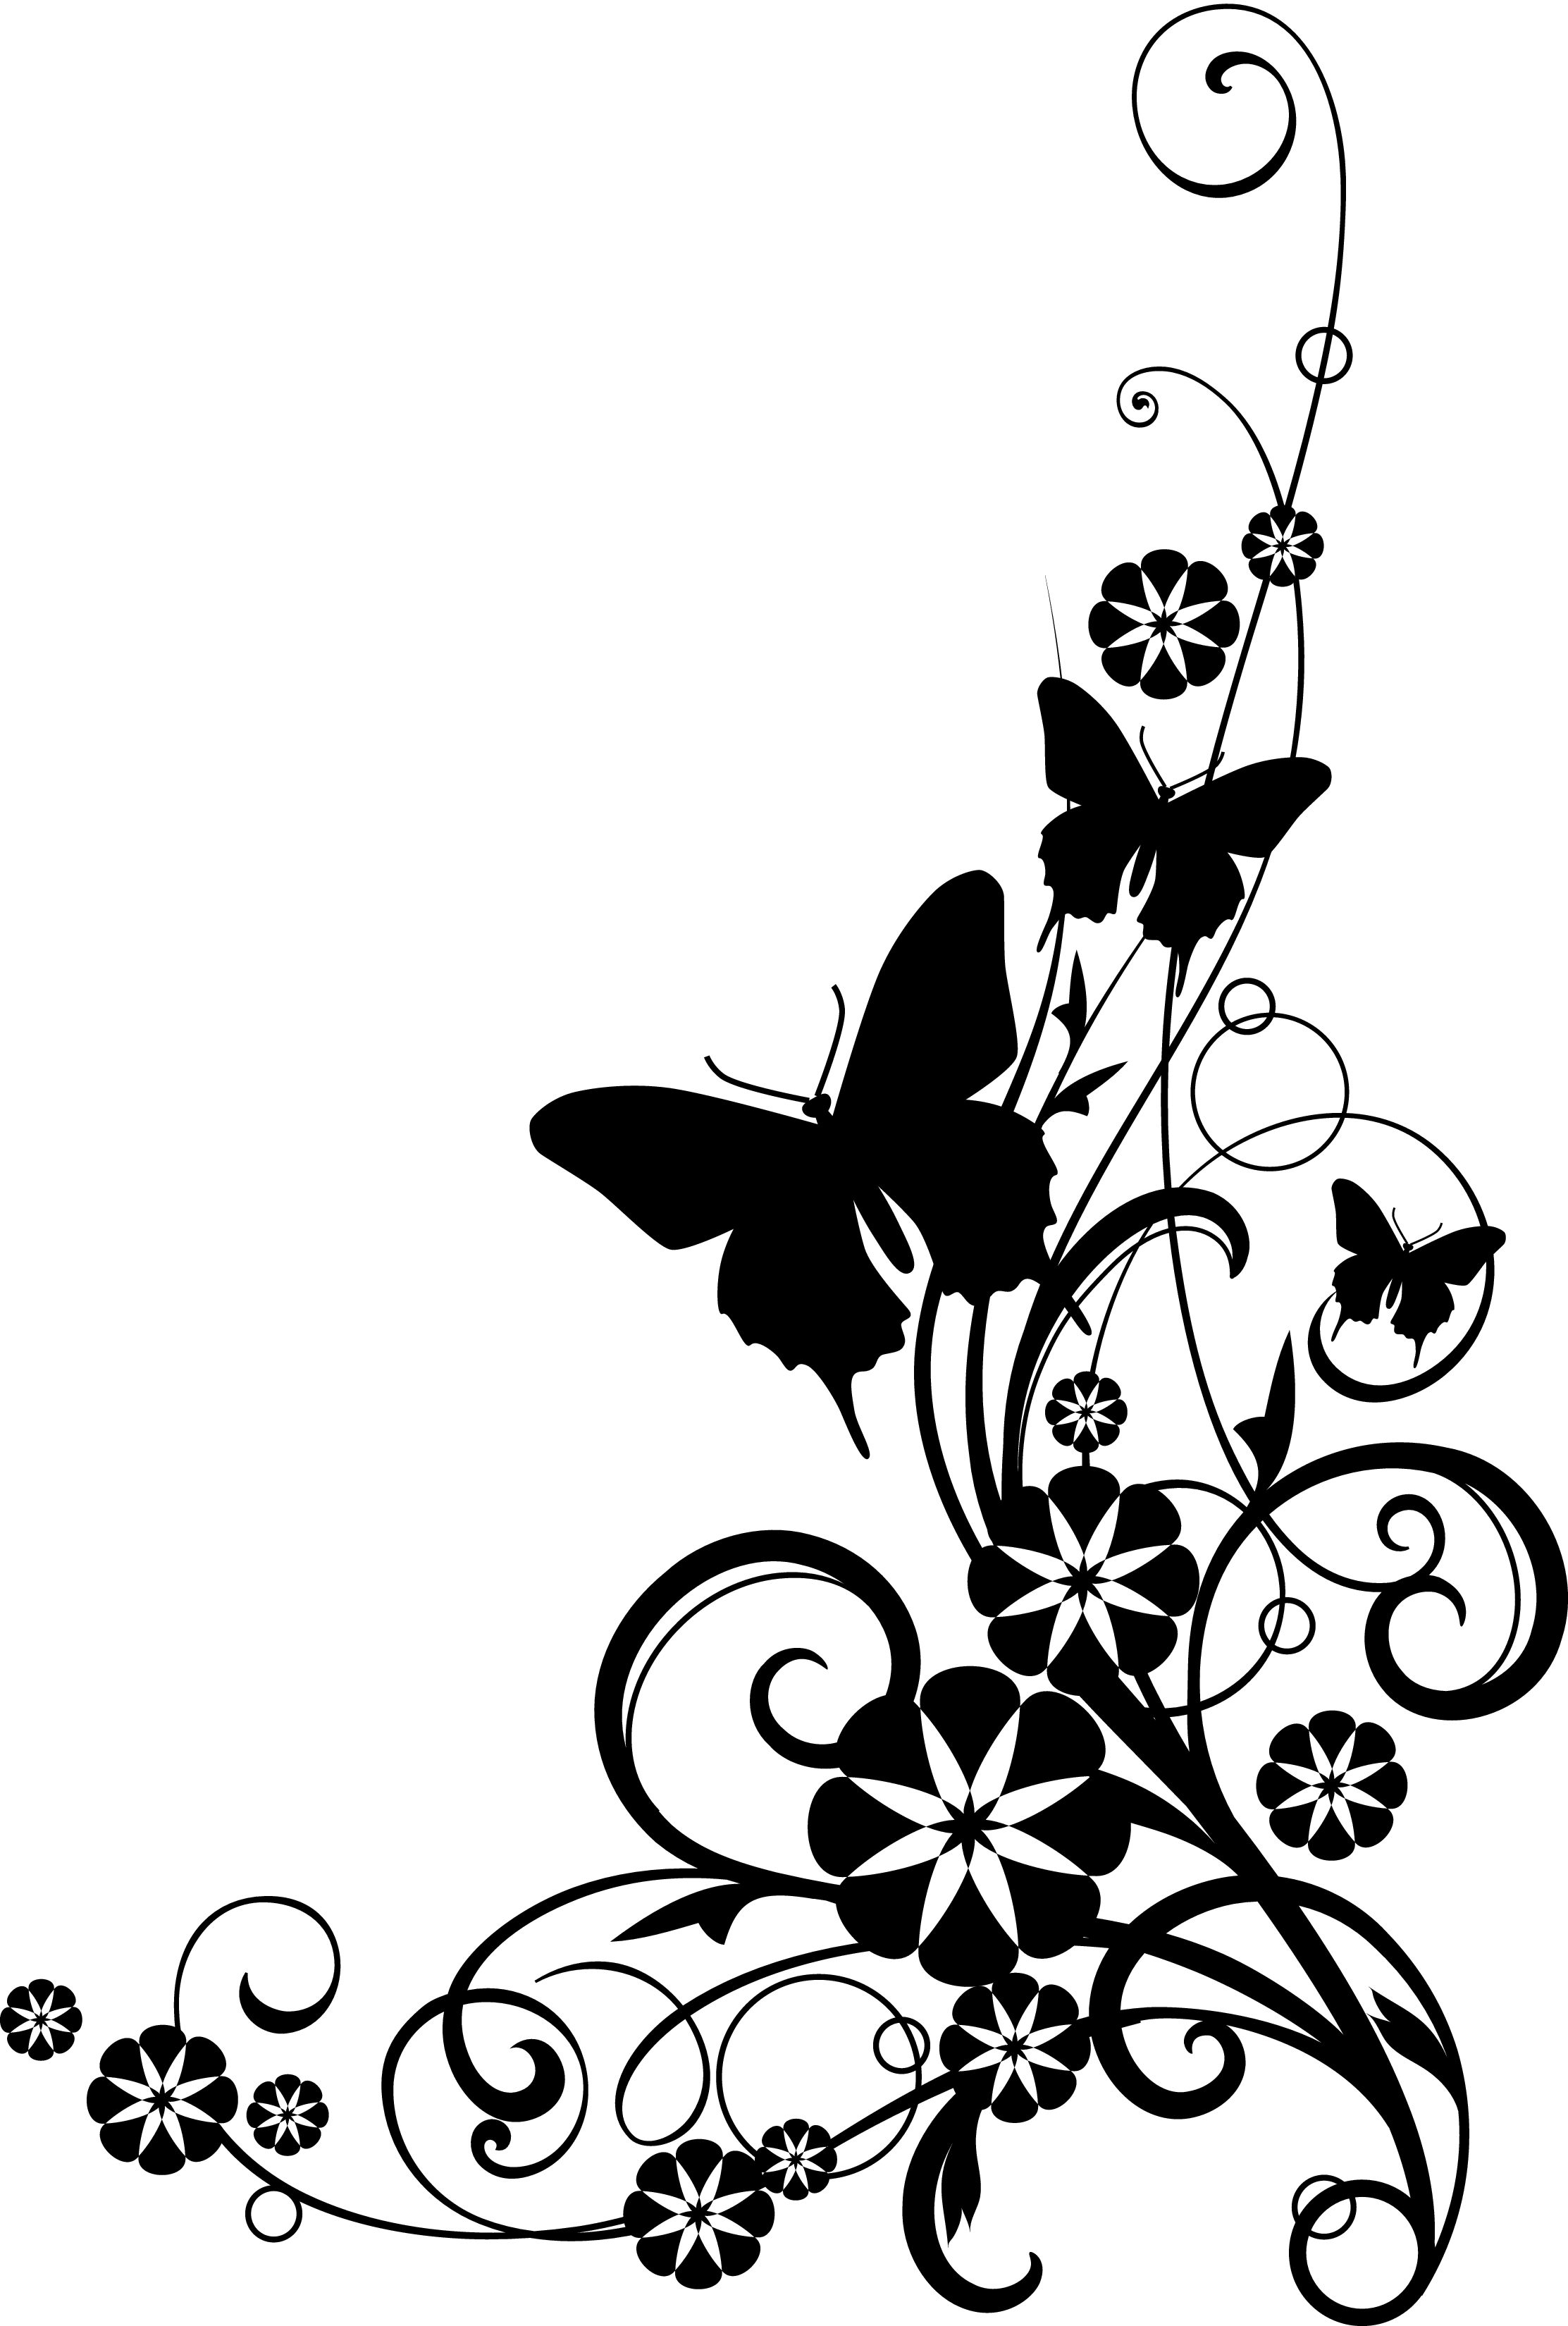 Border clipart panda free. Black and white flower png